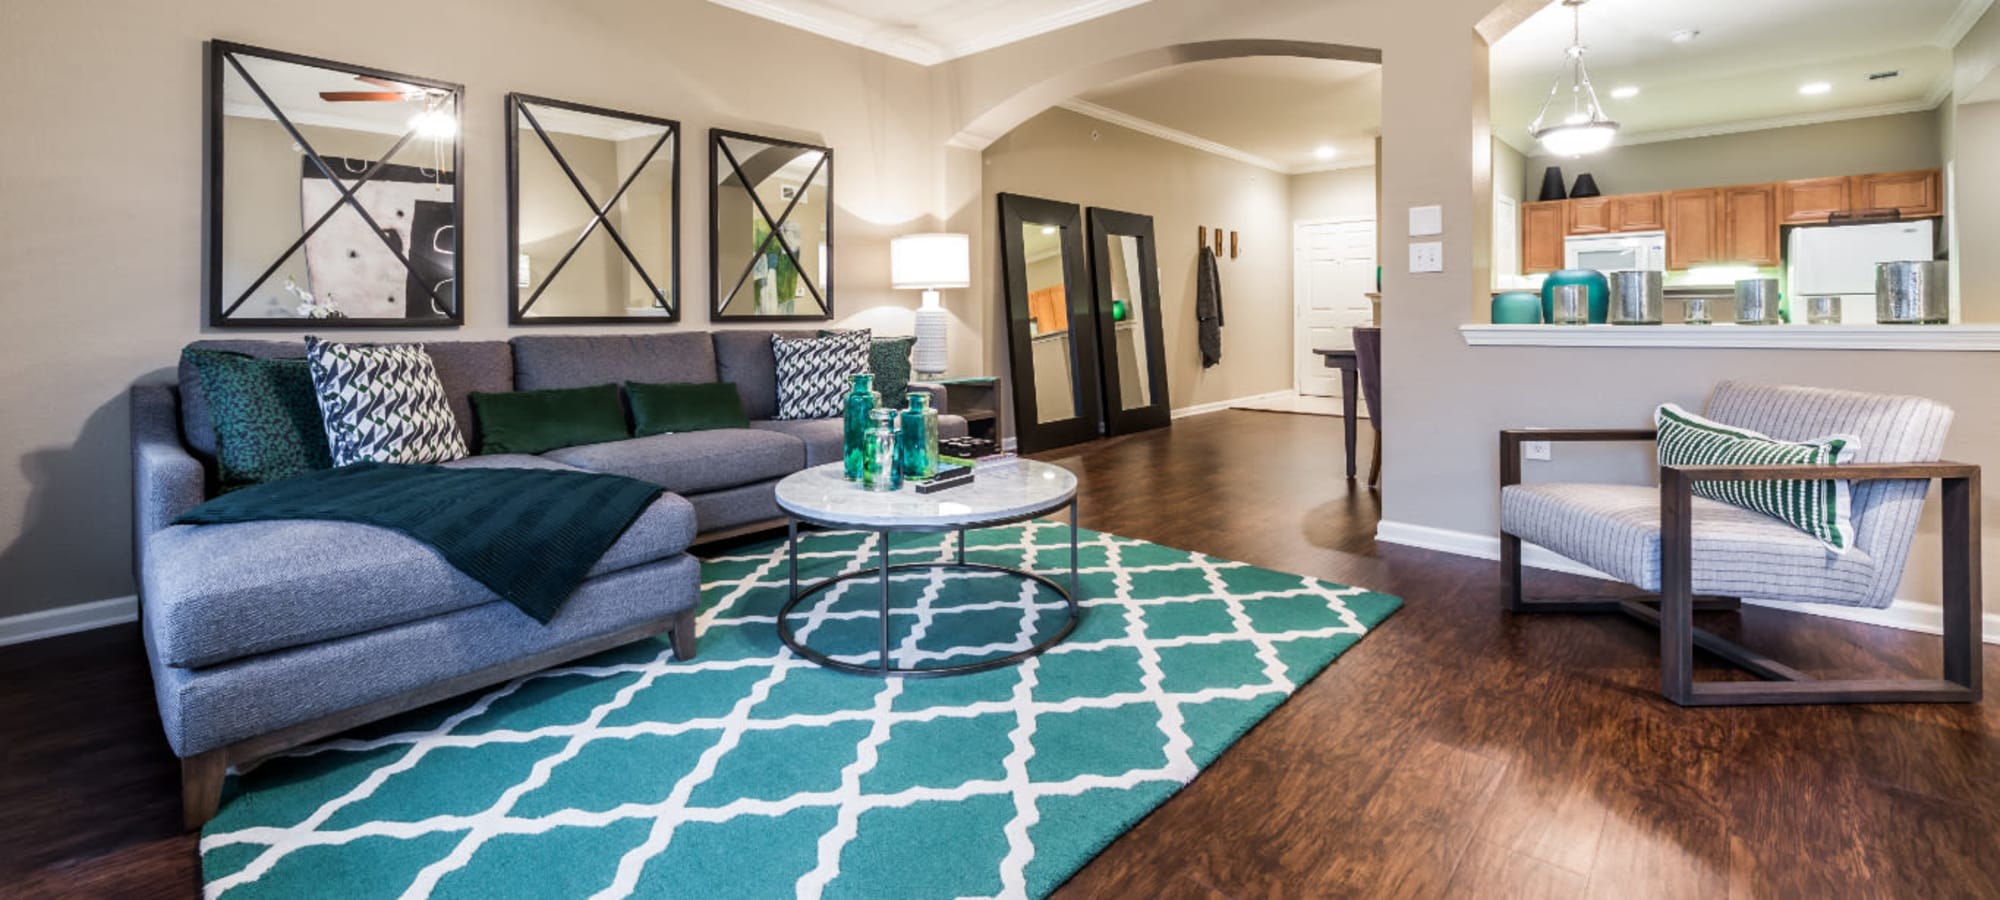 Amenities at Marquis at The Cascades in Tyler, Texas